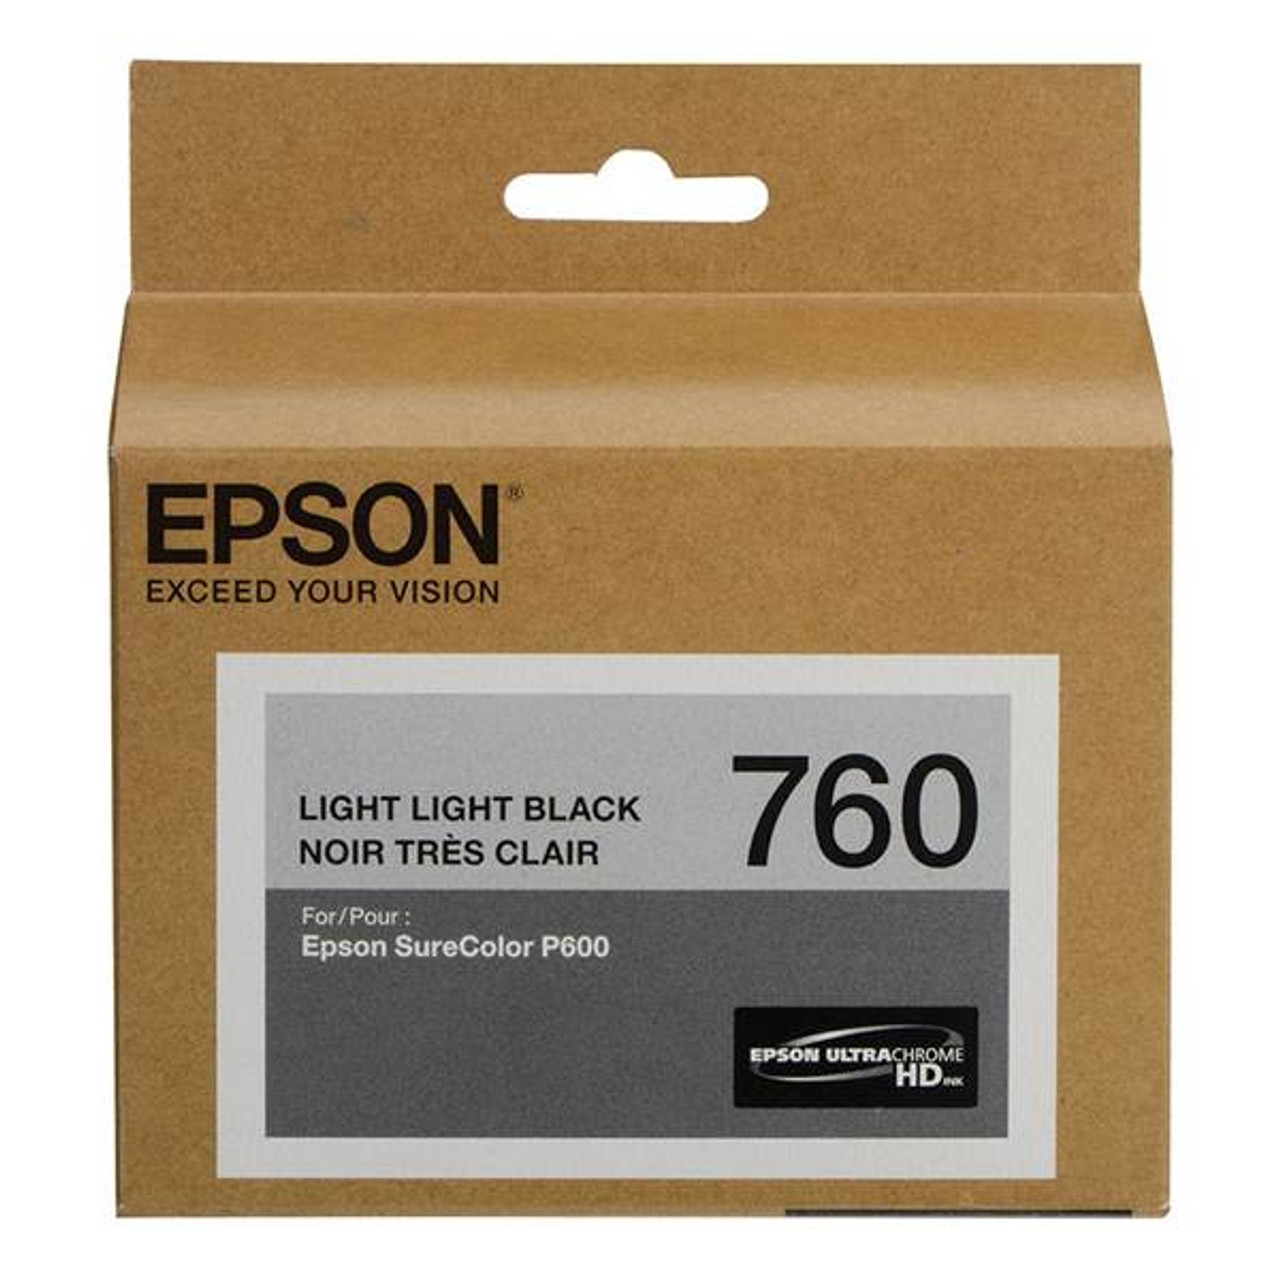 Image for Epson 760 UltraChrome HD Light Light Black Ink Cartridge CX Computer Superstore